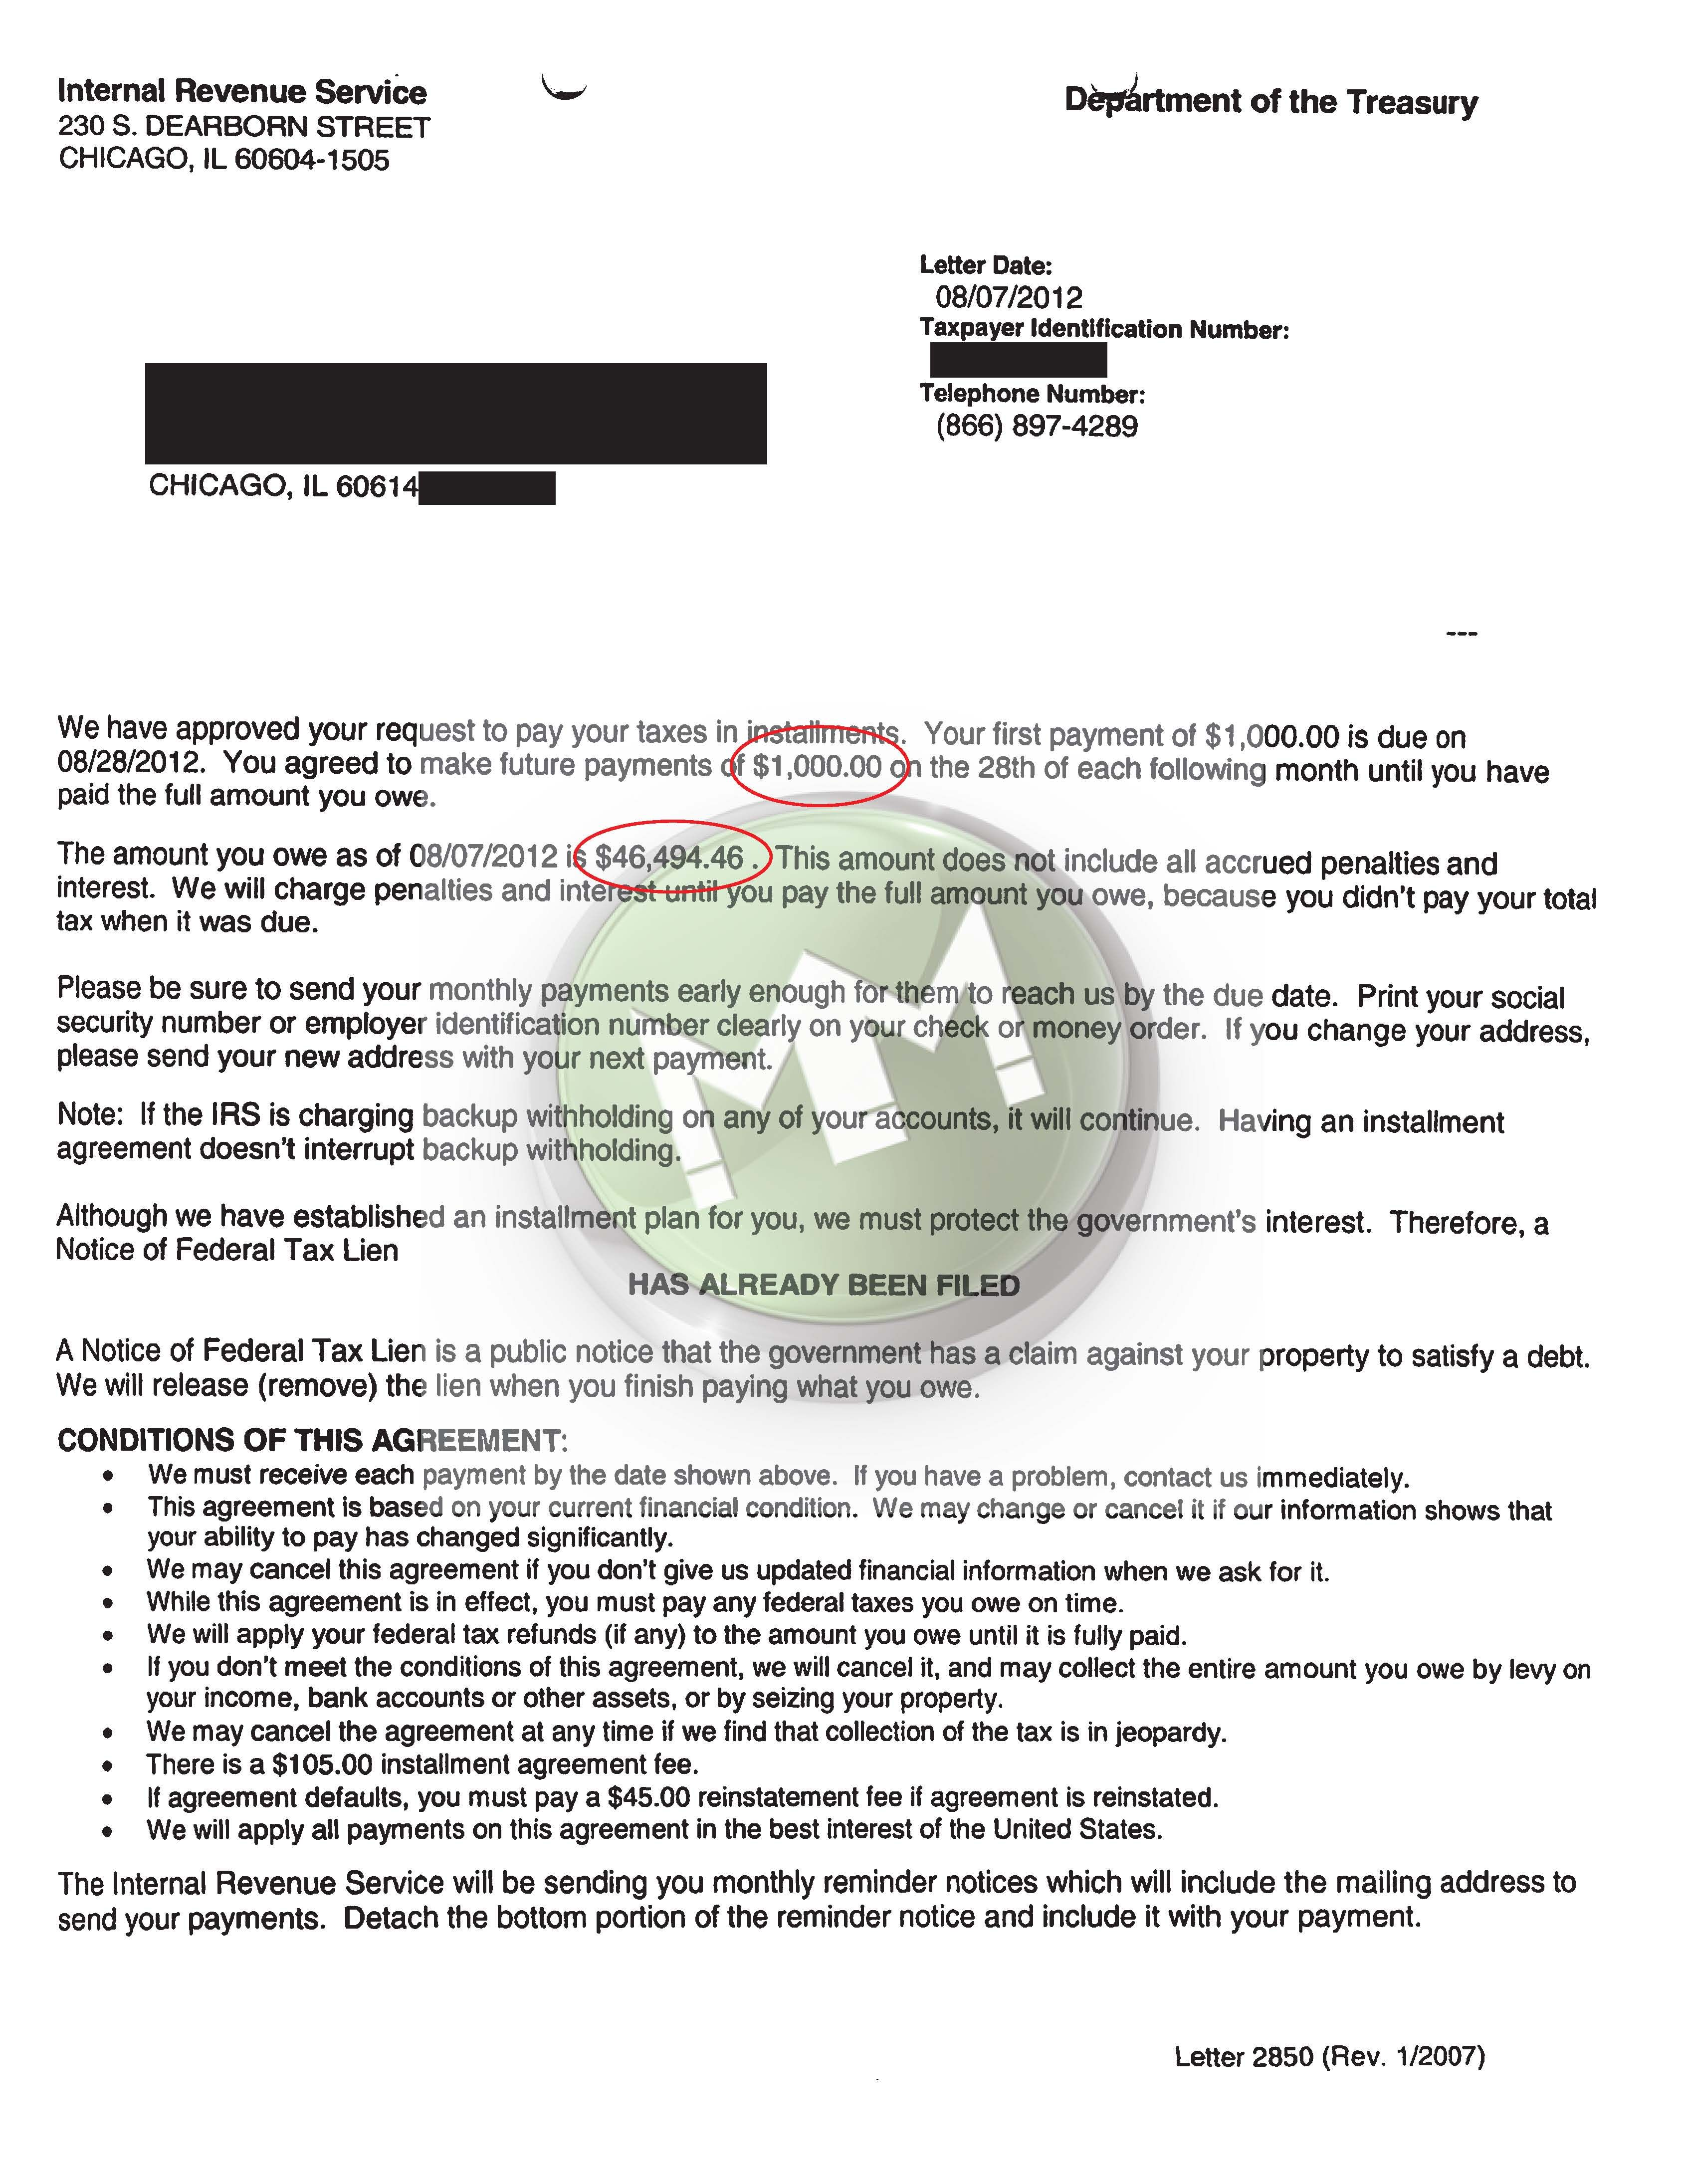 Irs Installment Agreement Illinois Payroll Taxes Lettering Internal Revenue Service